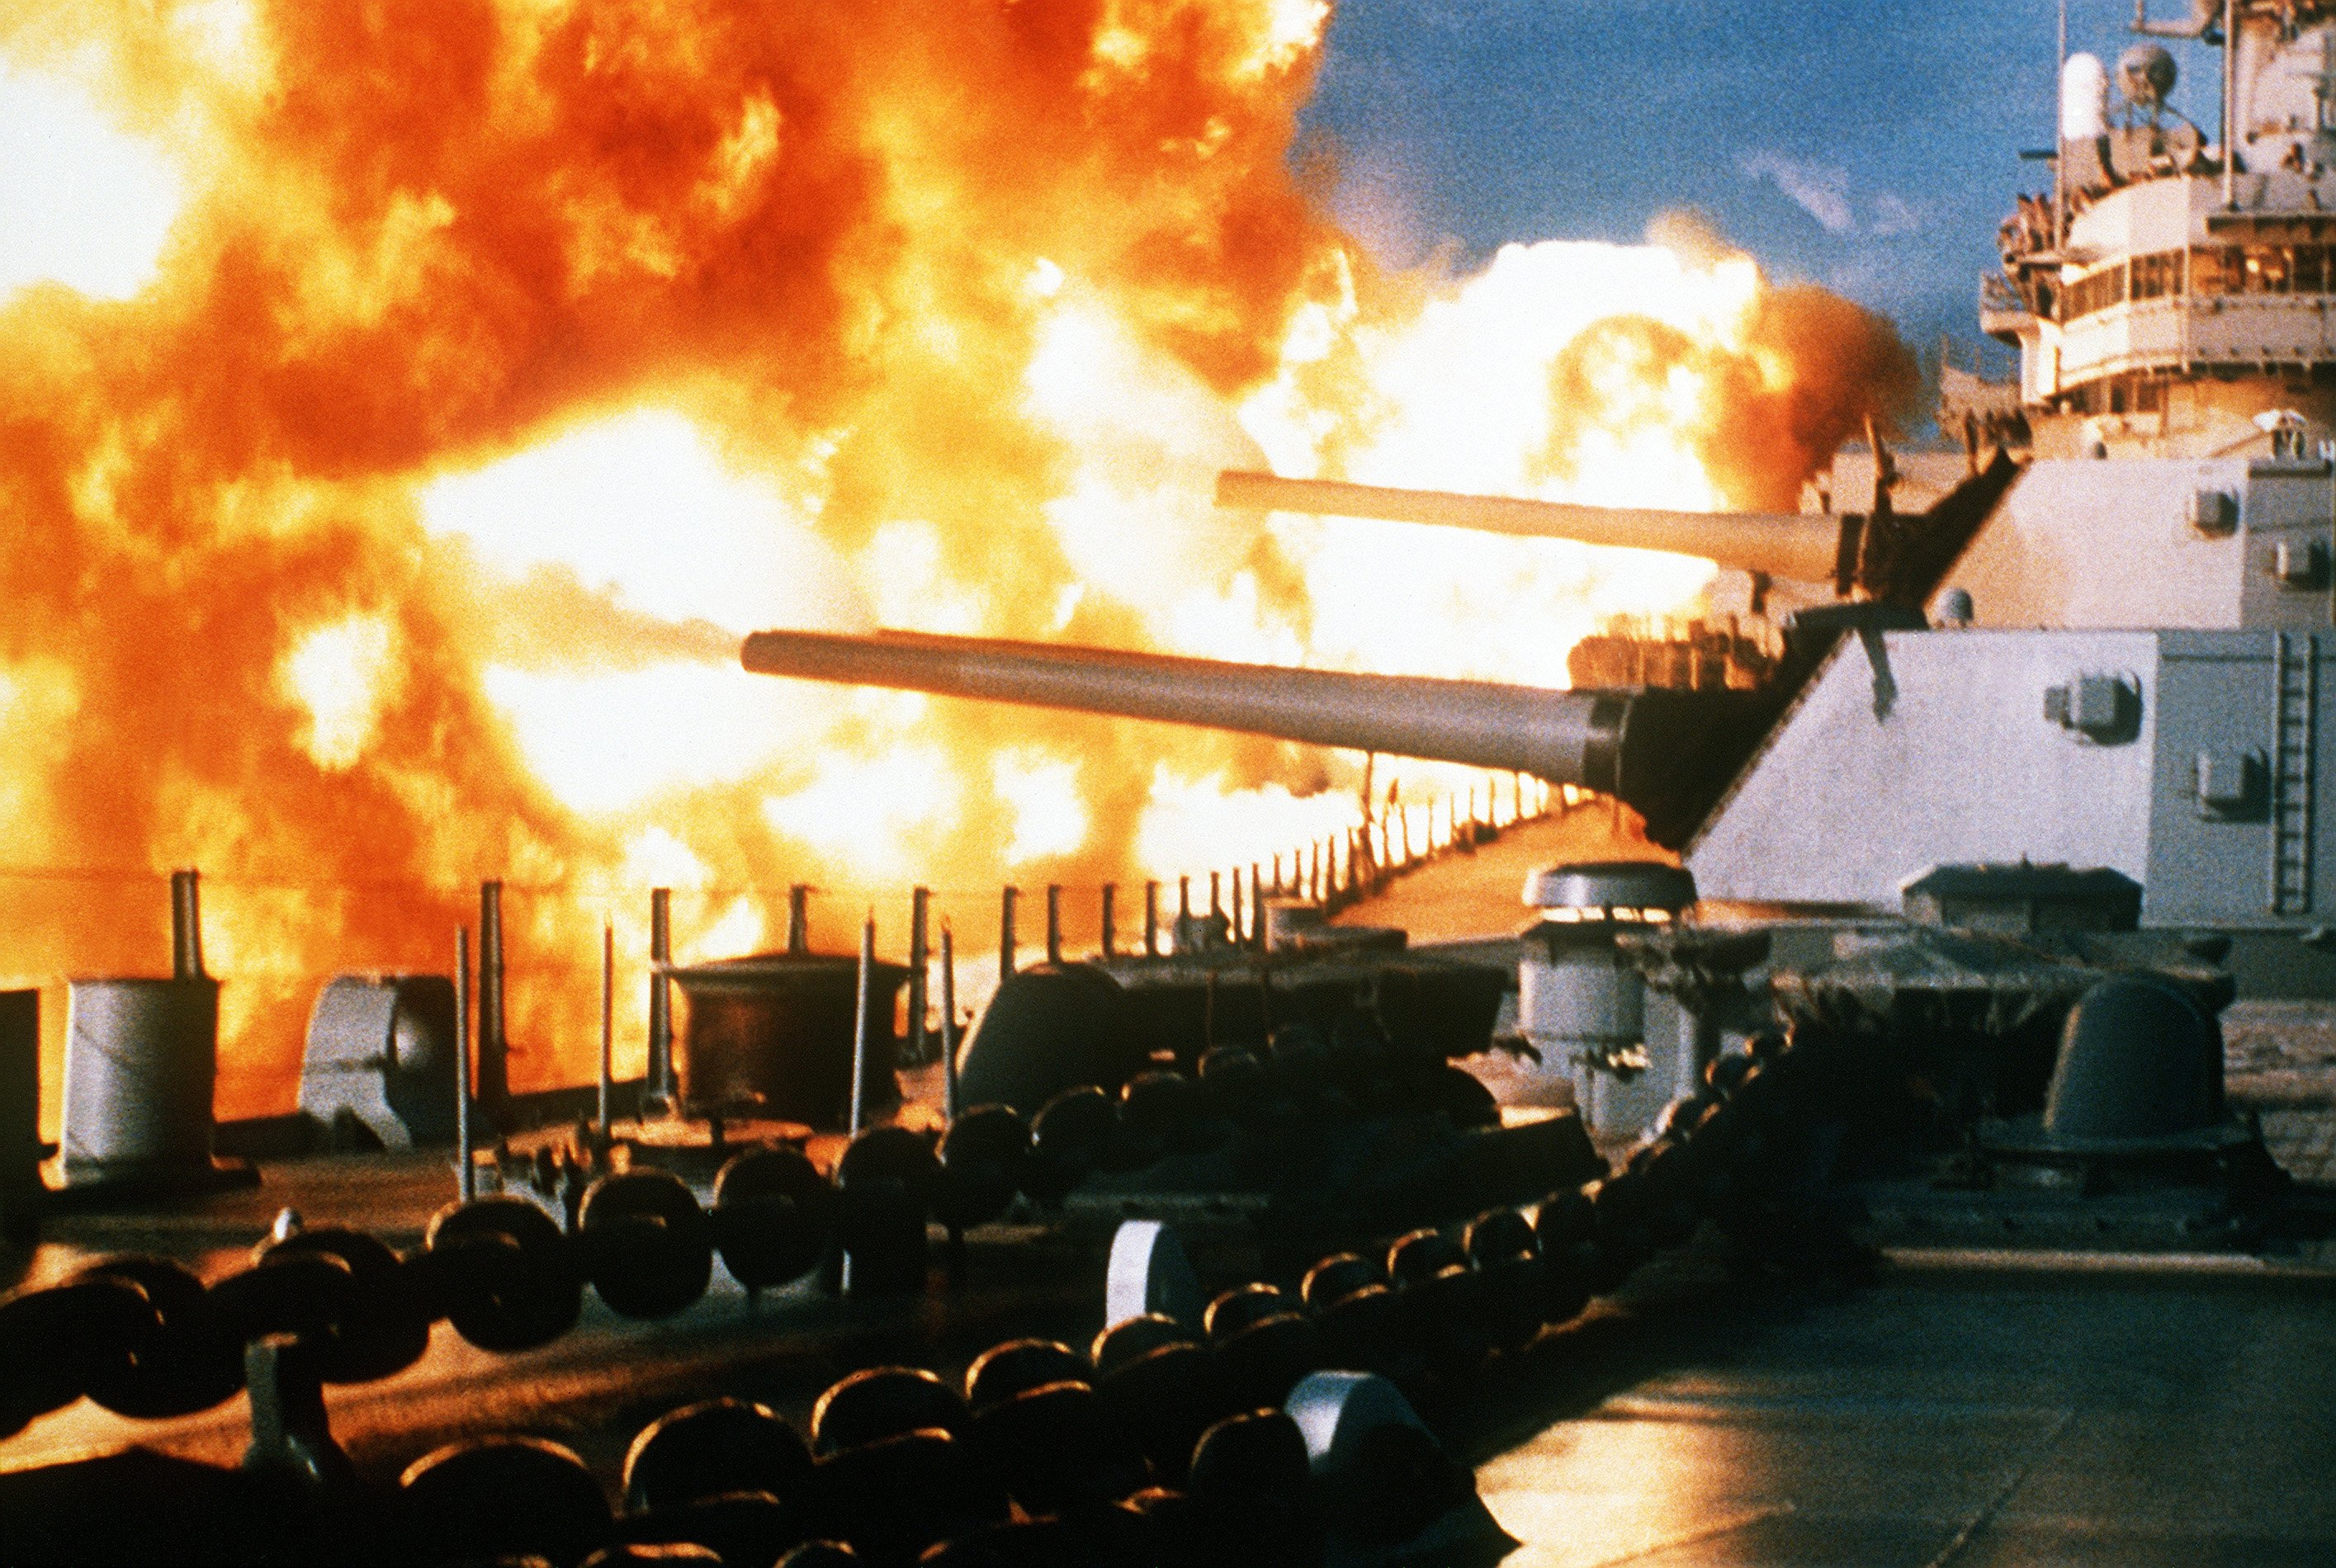 USS_New_Jersey_firing_in_Beirut,_1984